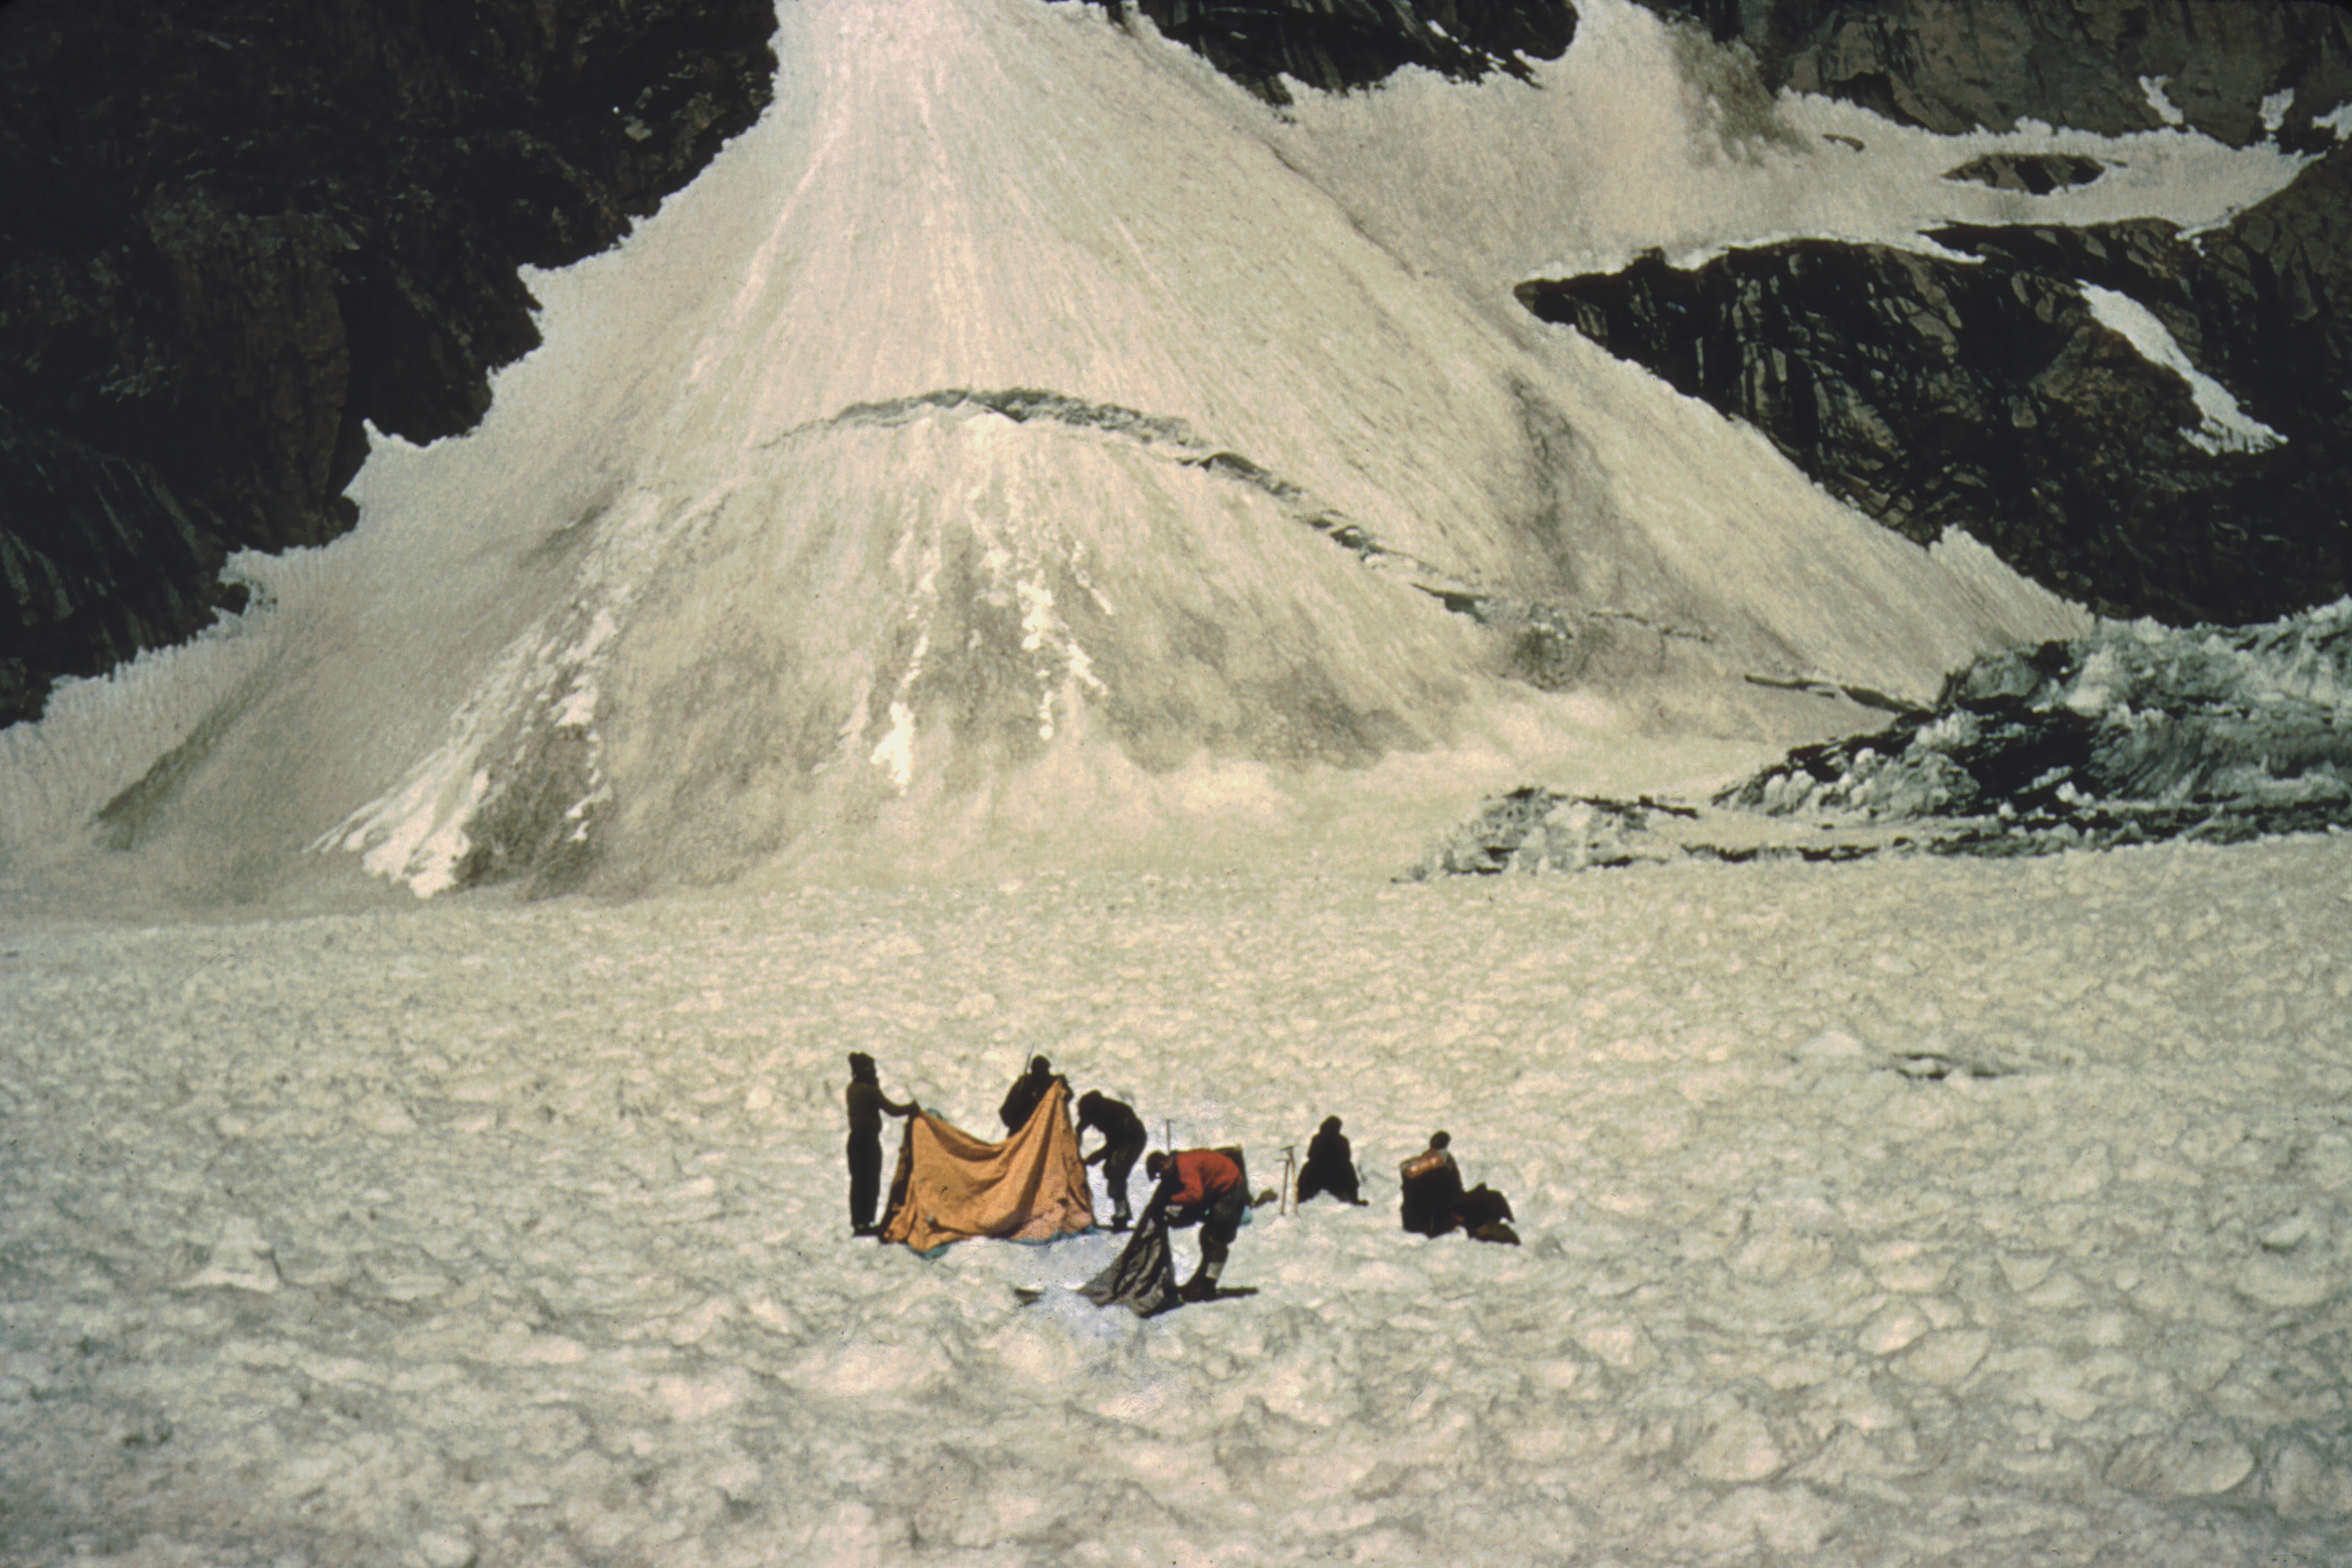 Camp 3 below the couloir at about 18,500ft (photo from Ted Norrish collection)